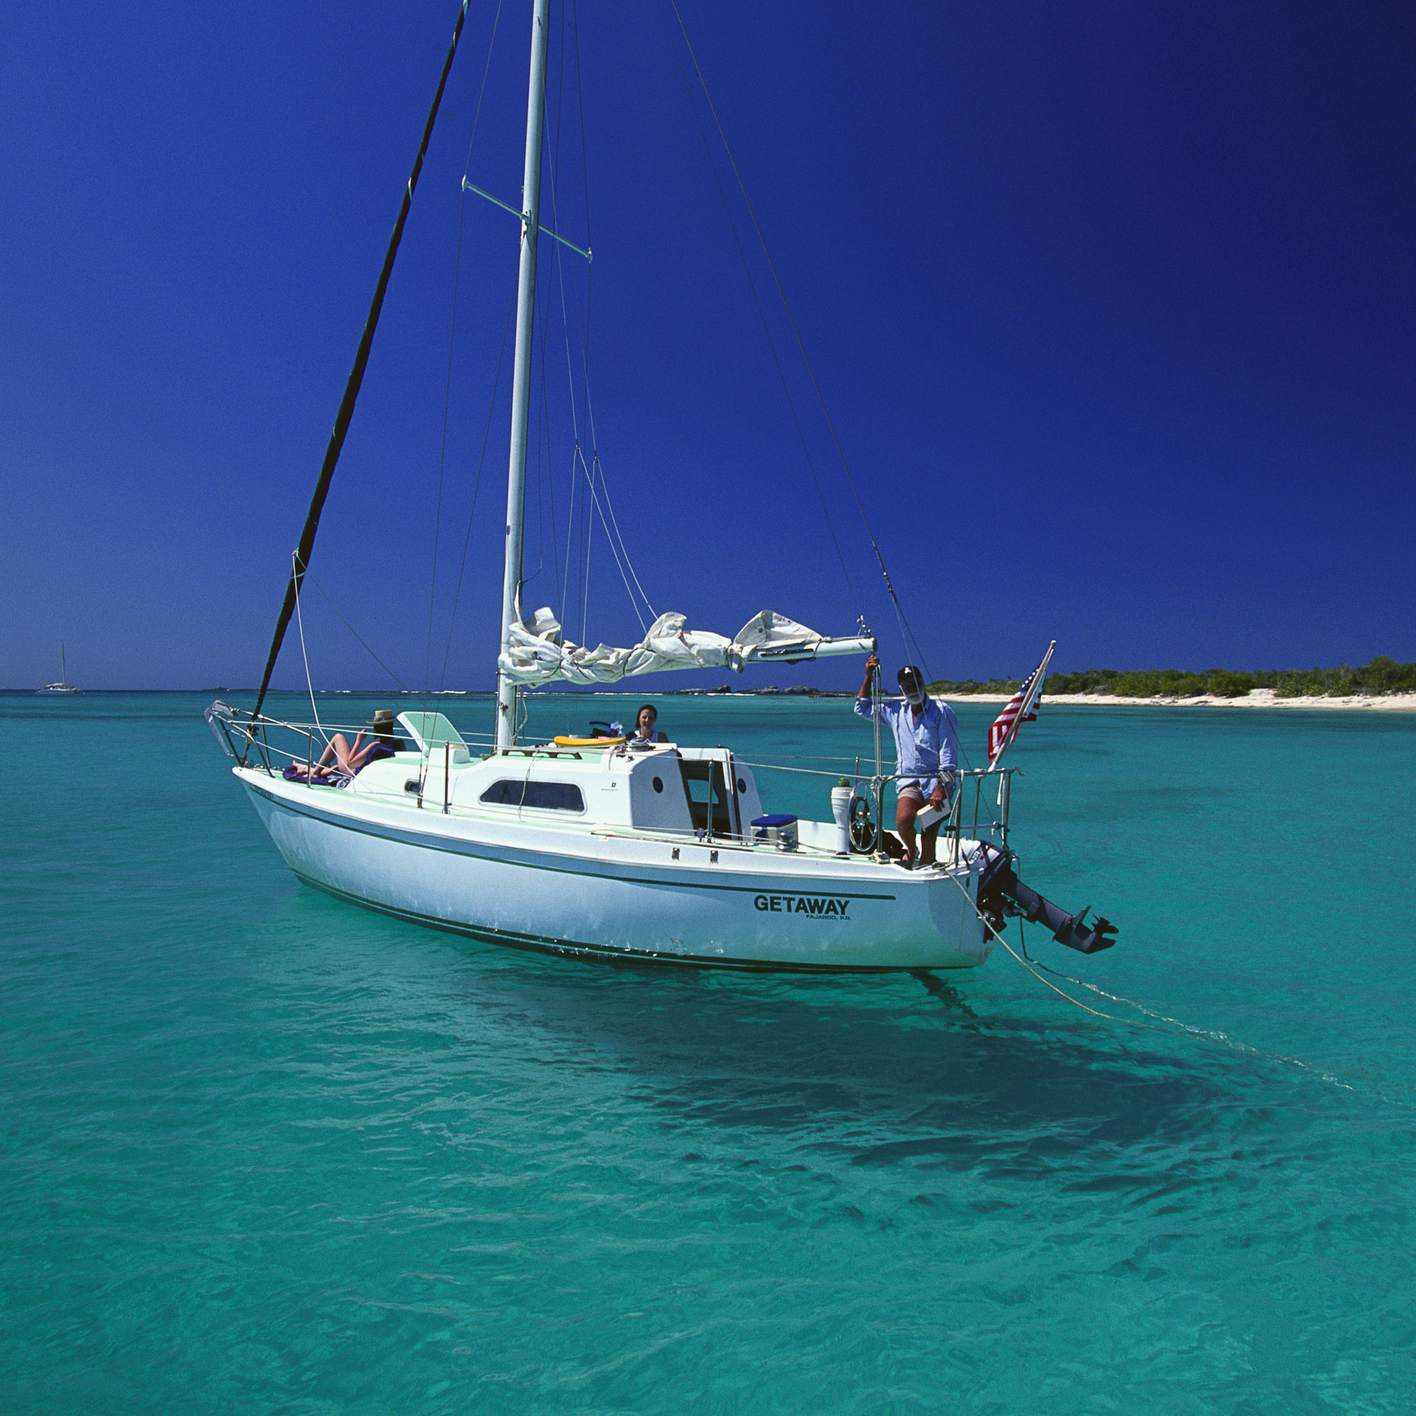 Try sailing in Puerto Rico